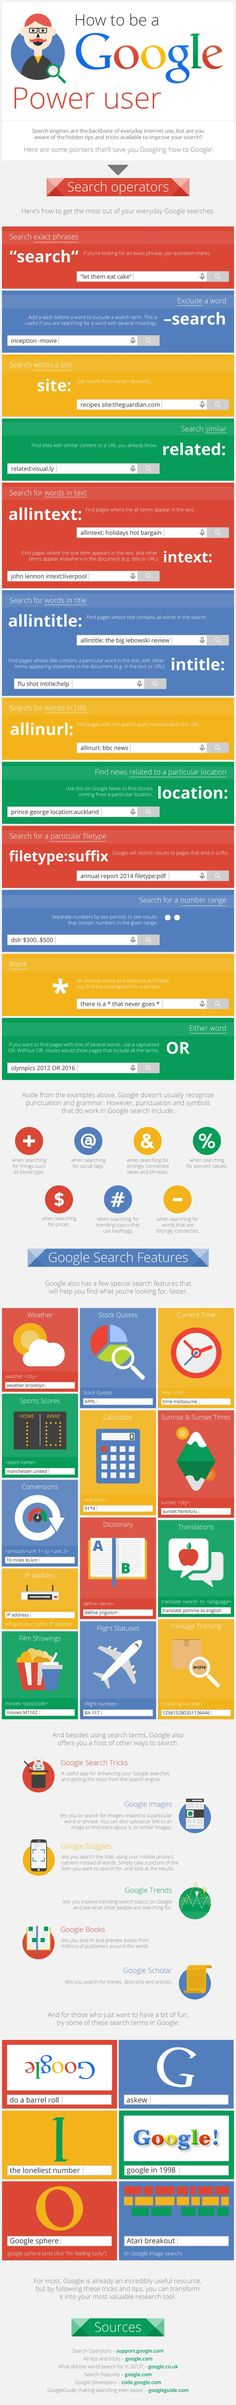 How to Become a Jedi Master of Google Search - infographic social media